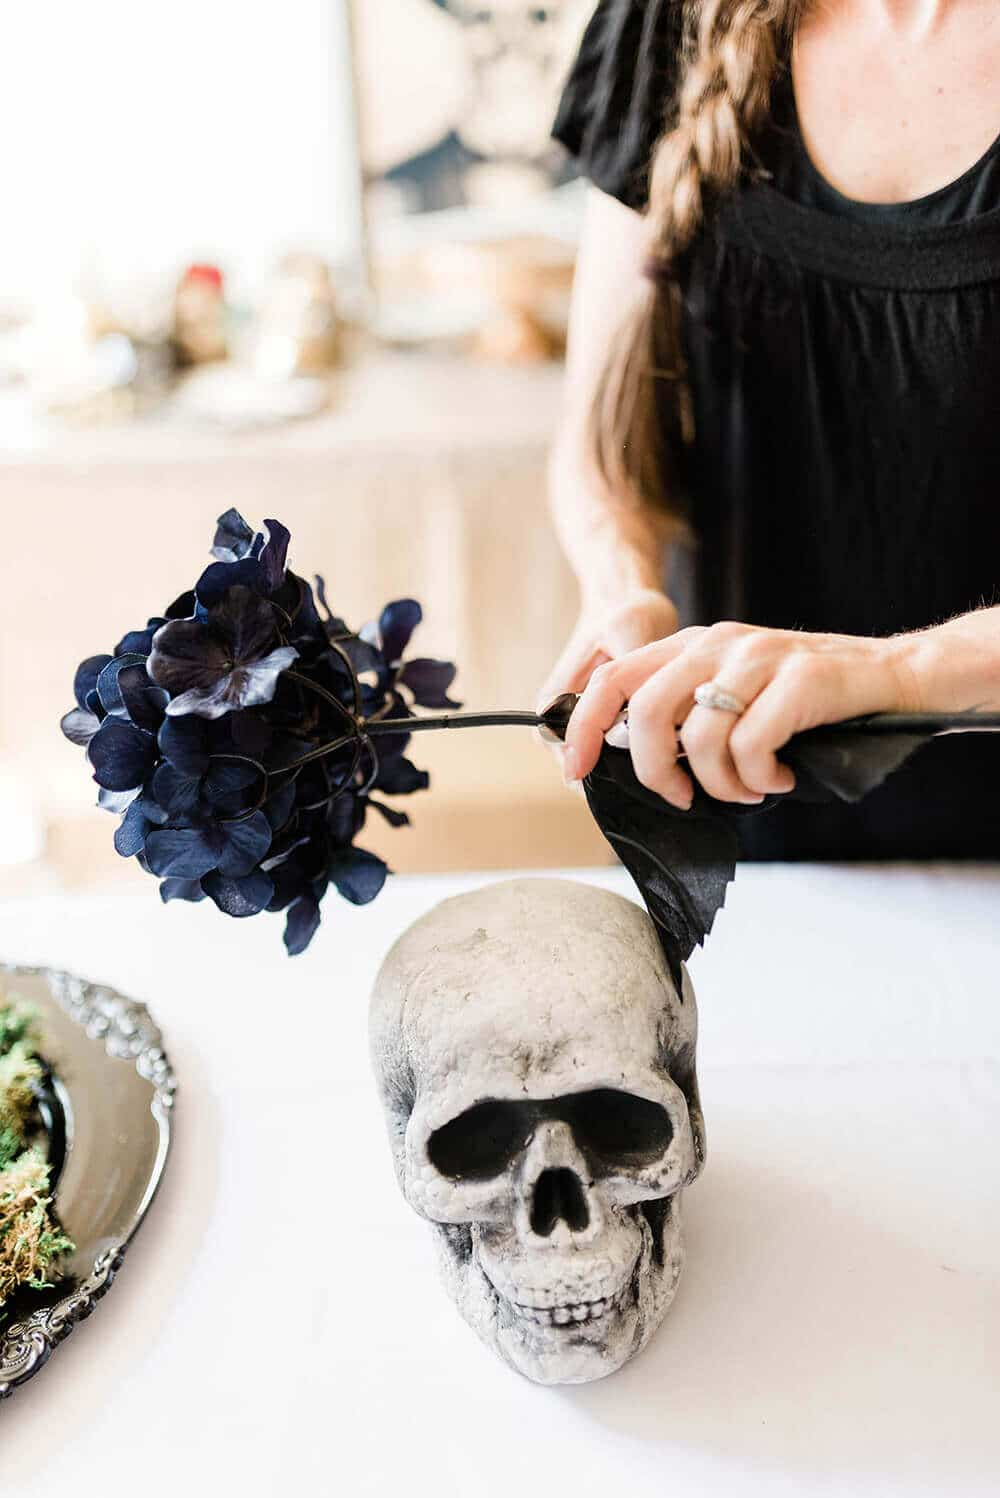 Trimming flower stem for Floral Skull Centerpiece